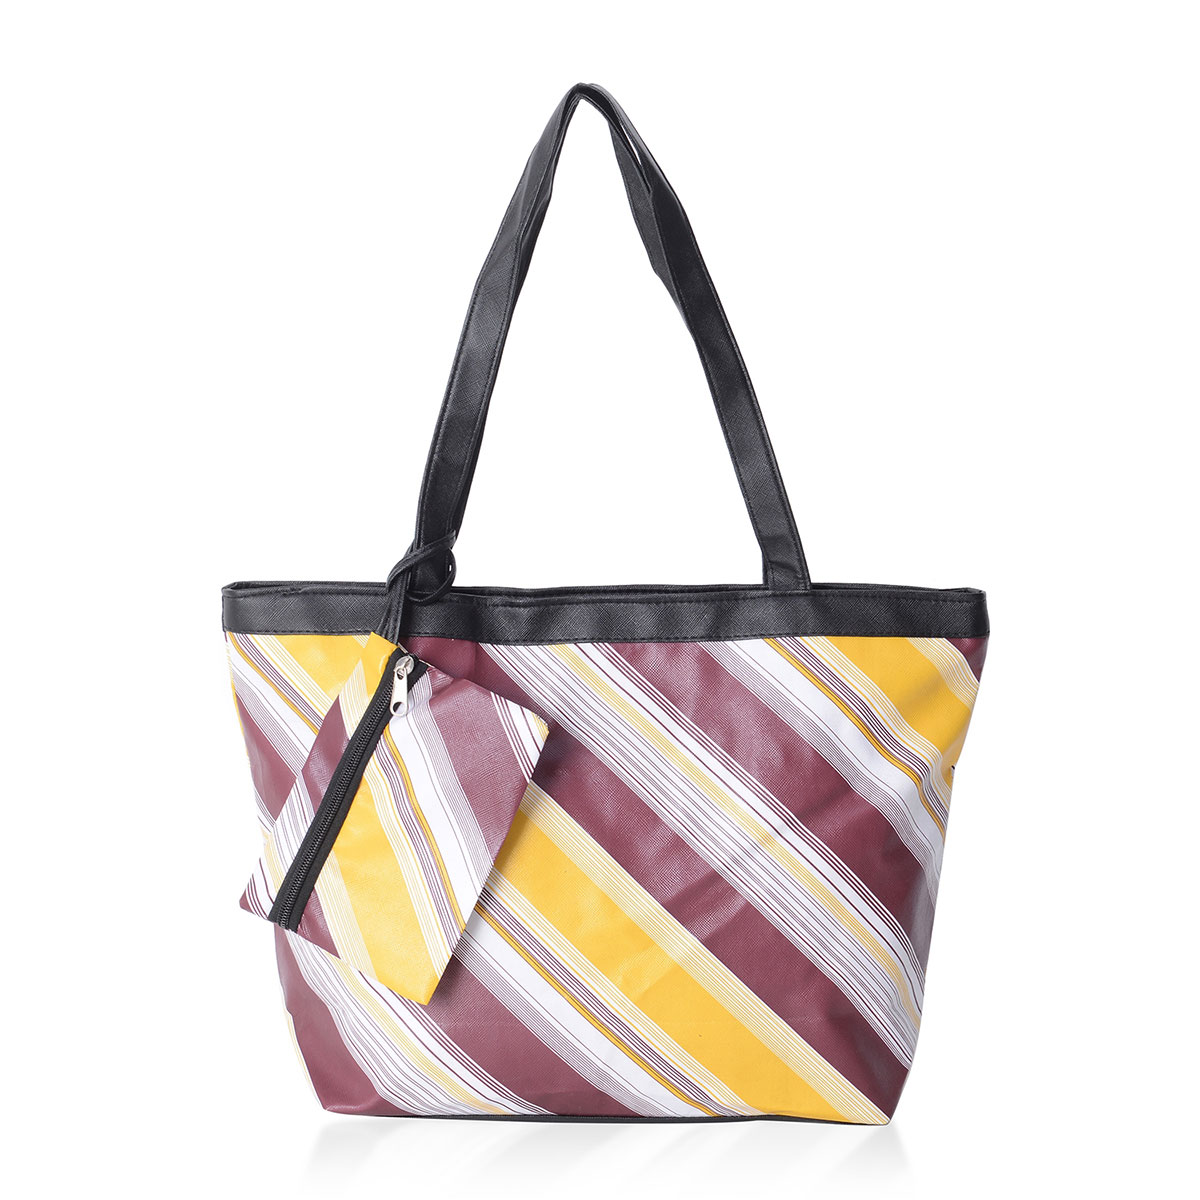 0e32a20aed4 Yellow and Marsala Striped Pattern Satin Black Trimmed Tote Bag  (15.5x4.5x10 in) with Matching Removable Coin Pouch (6x4.5 in) | Shop LC